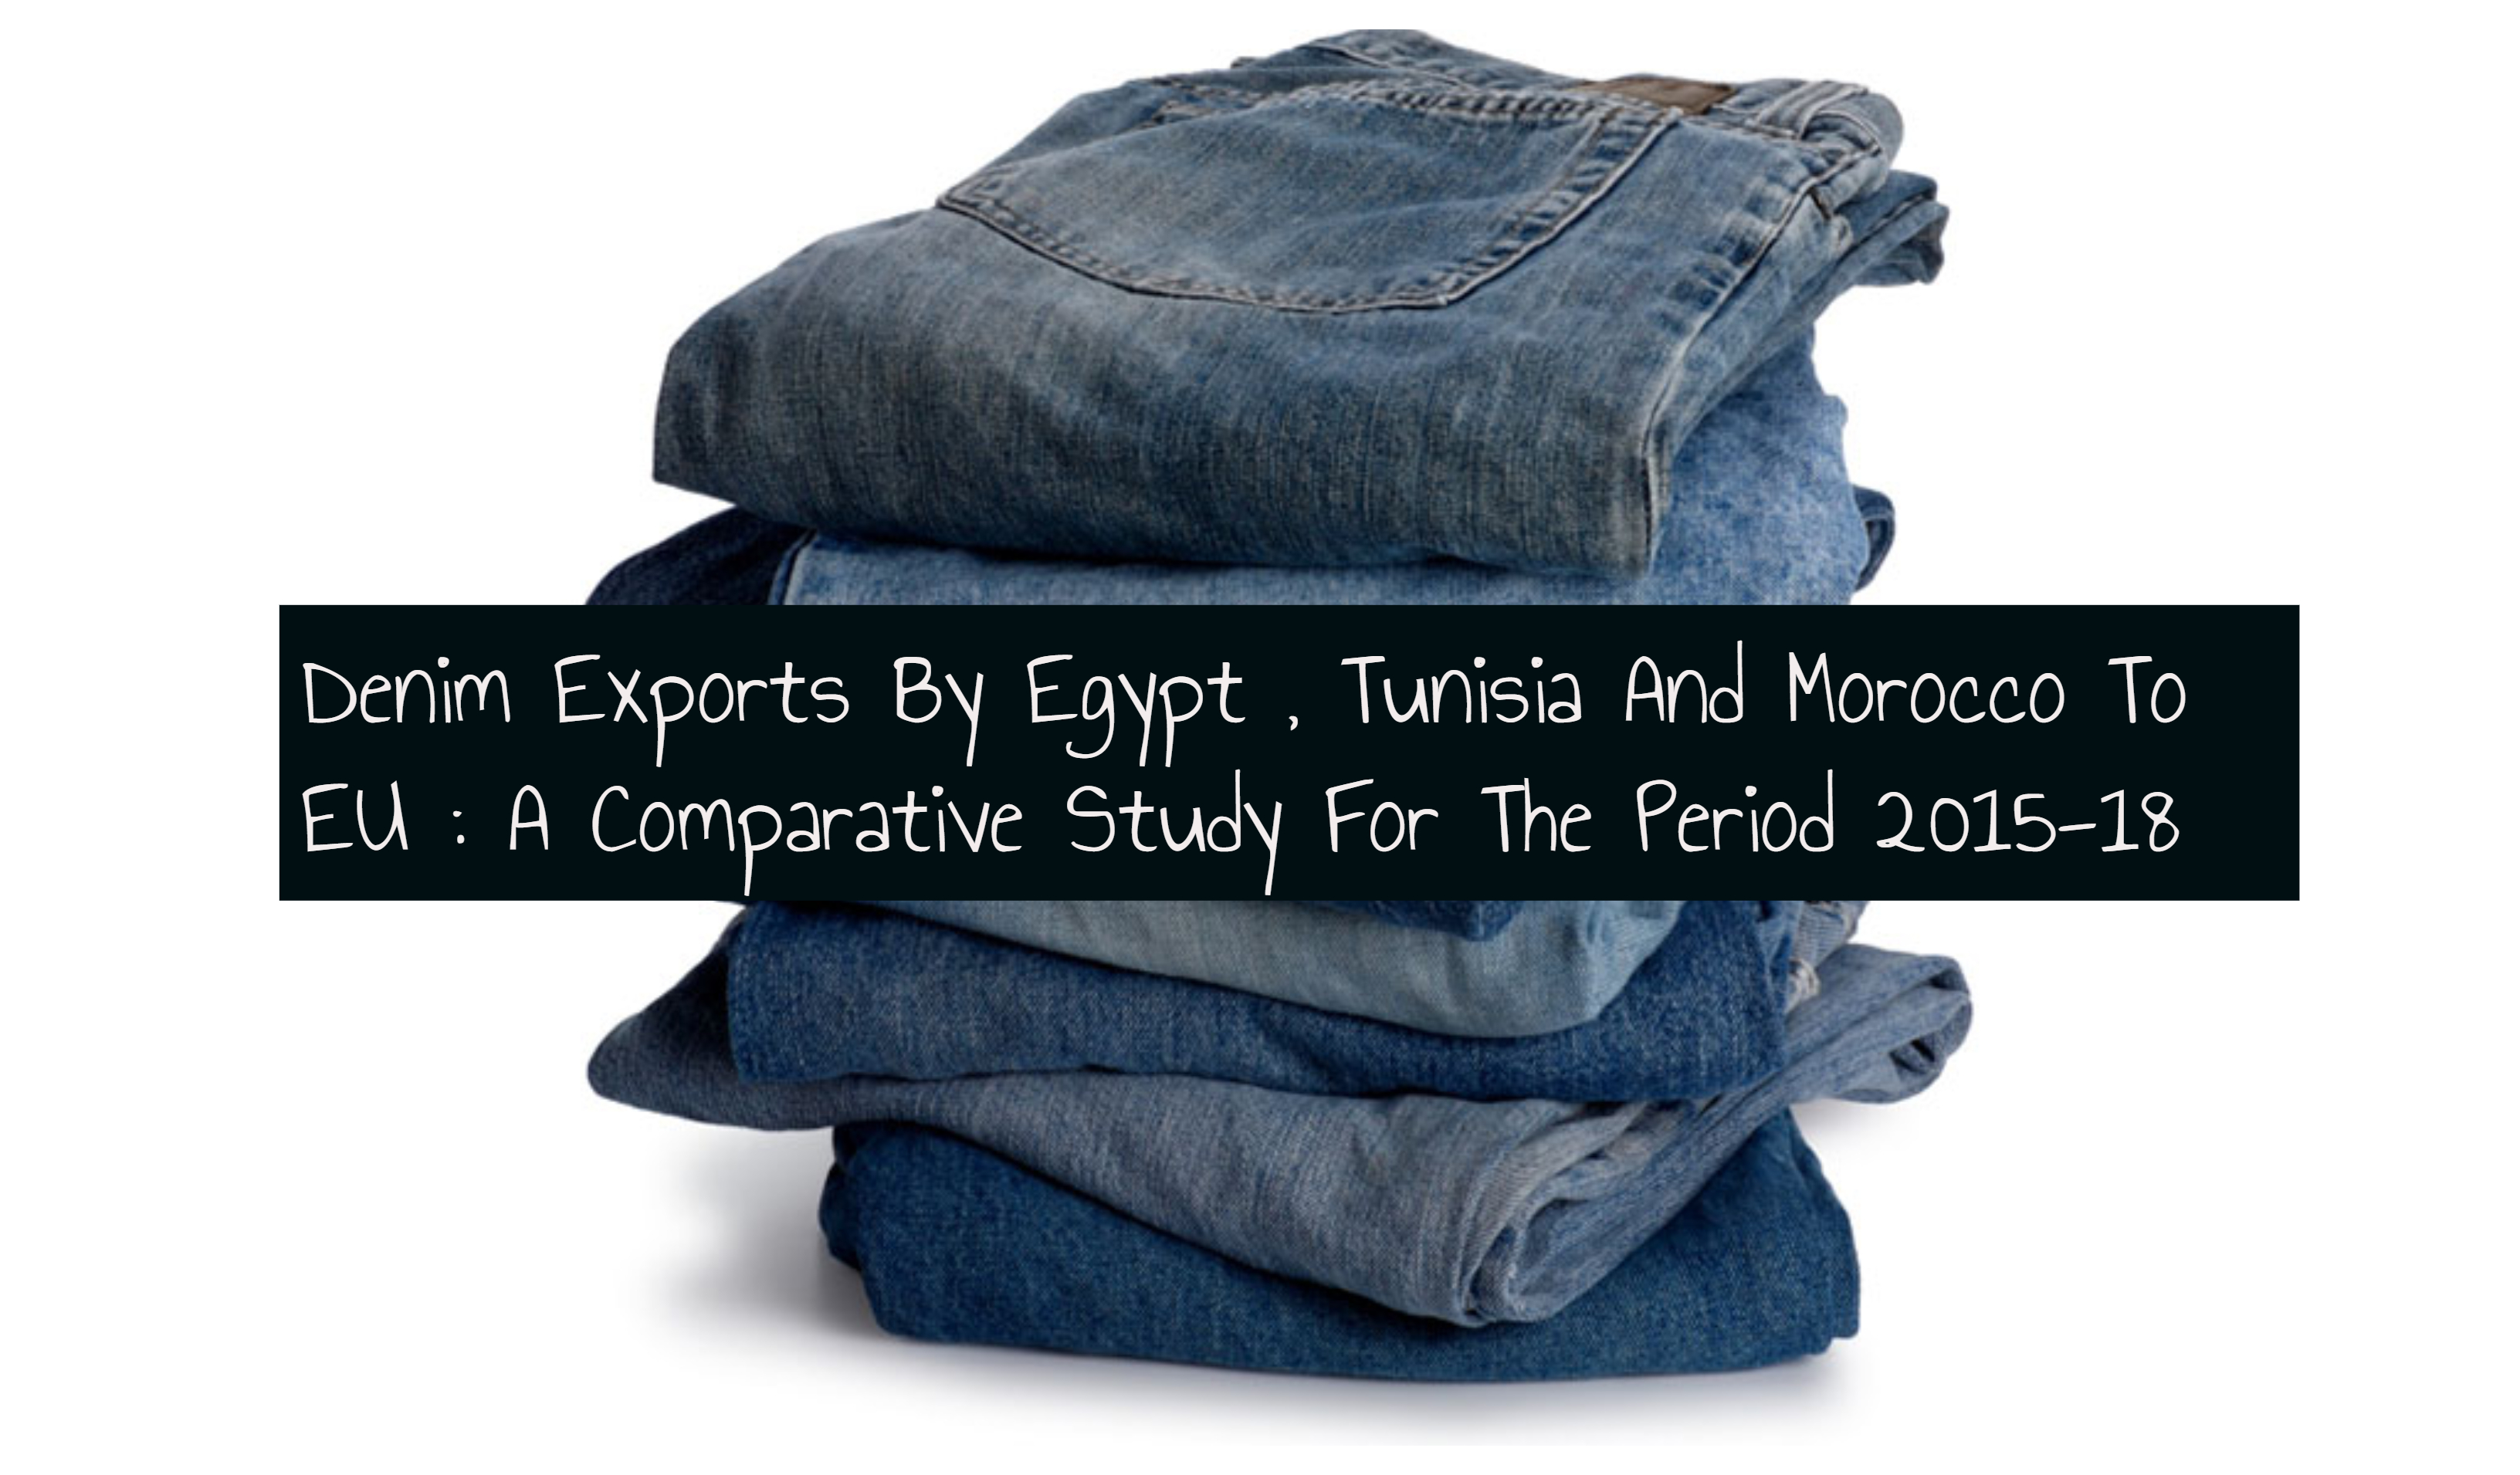 Denim Exports By Egypt , Tunisia And Morocco To EU : A Comparative Study For The Period 2015-18